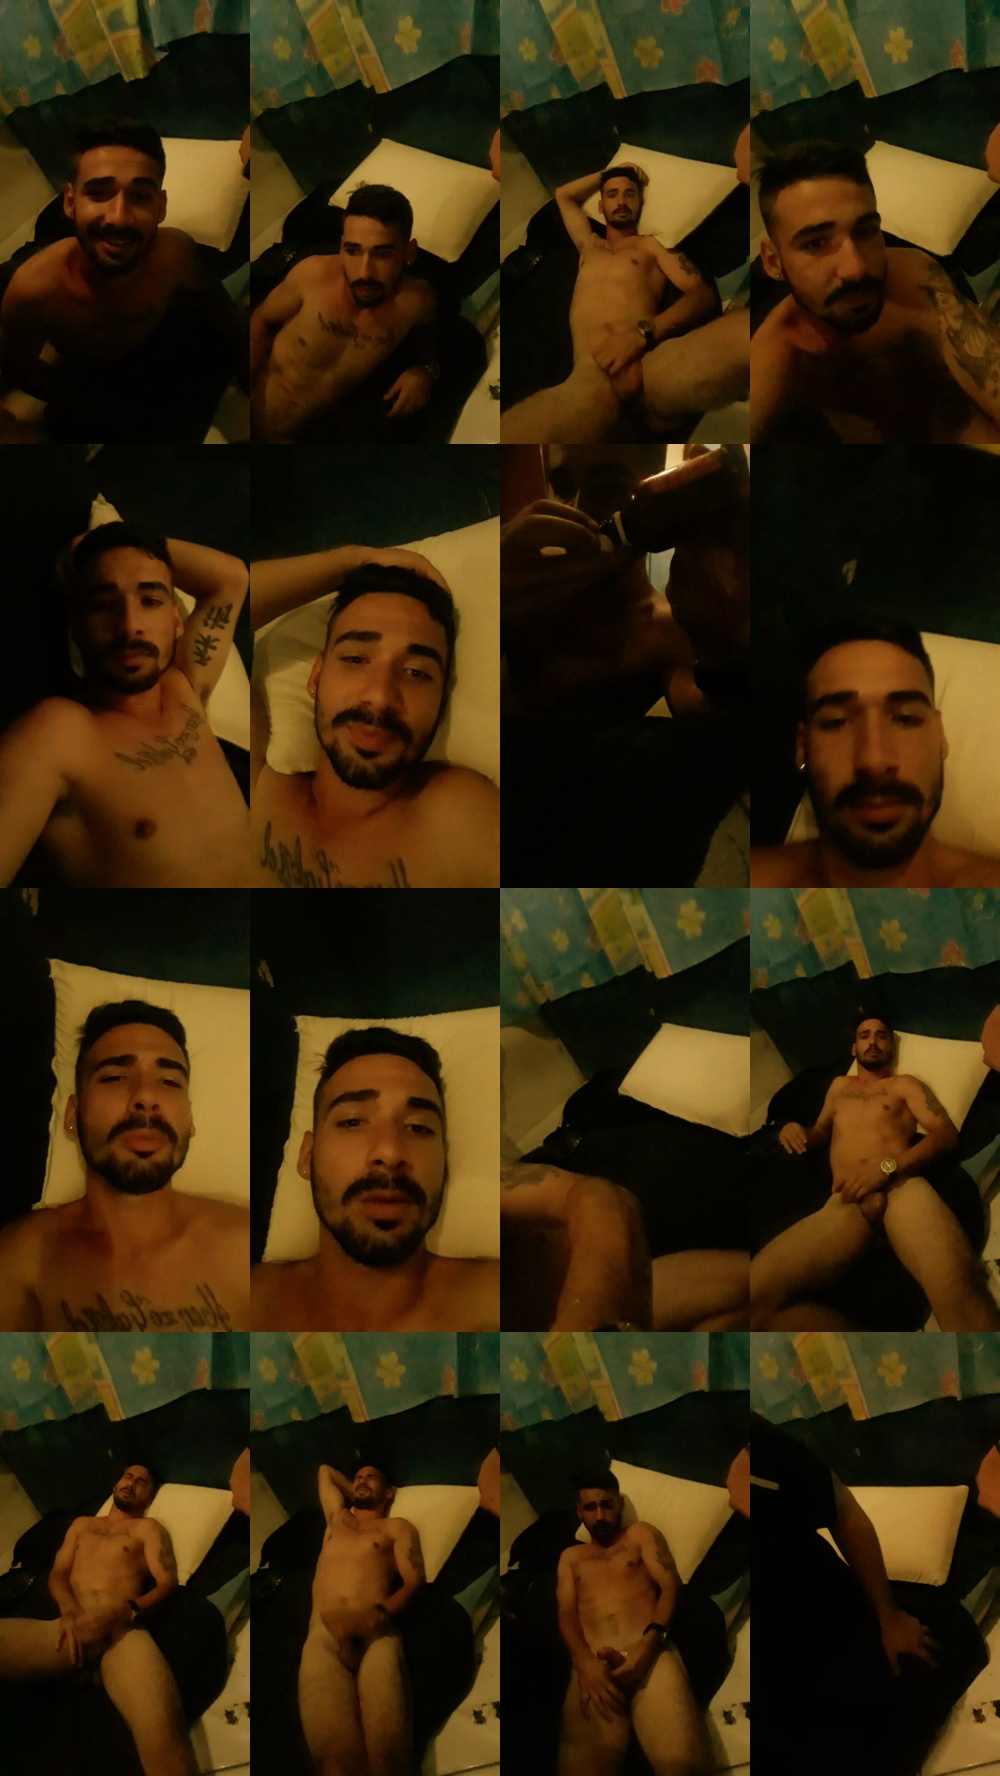 sexyboy2213  [29-12-2018] Download